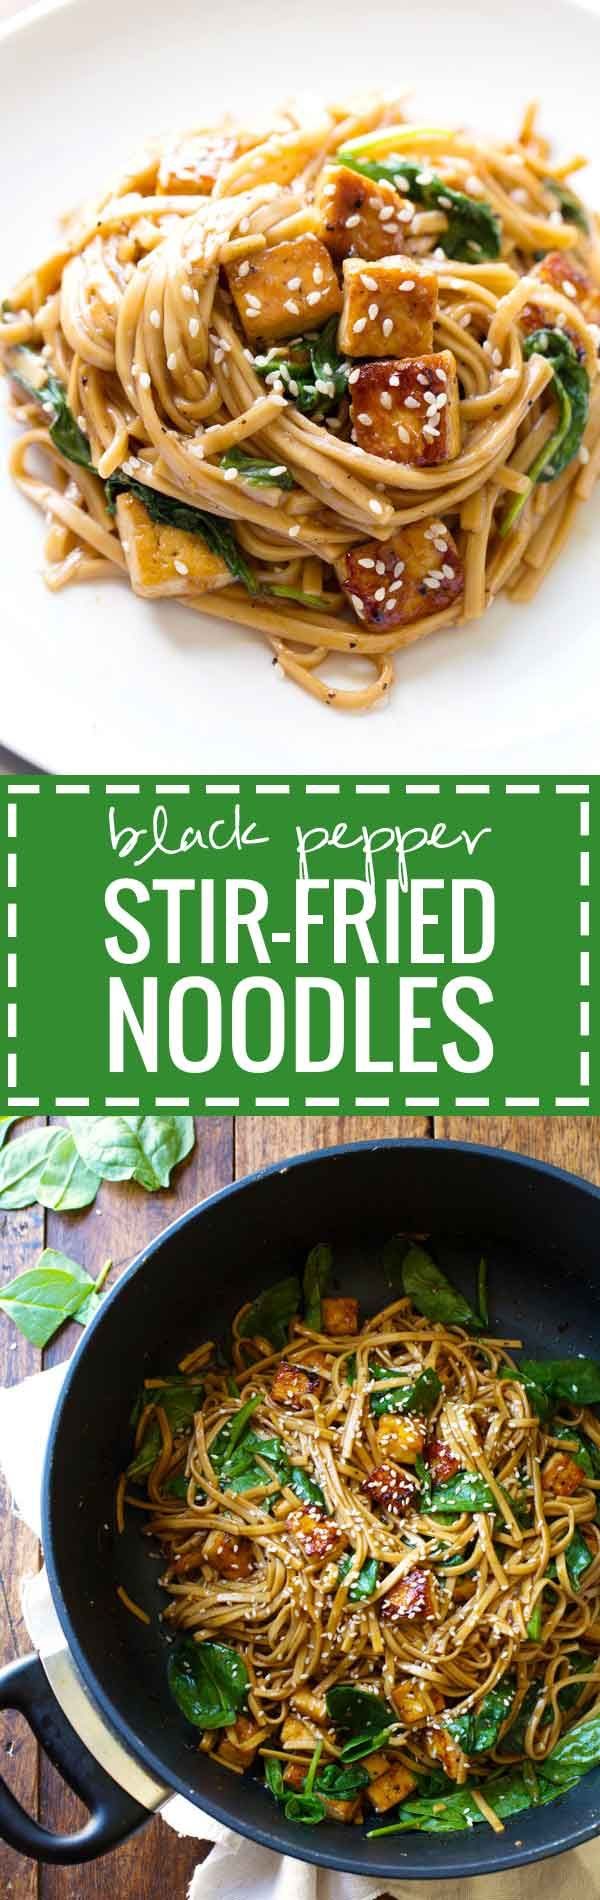 Black Pepper Stir Fried Noodles - this simple 30 minute stir fry is packed with AMAZING flavor! | pinchofyum.com